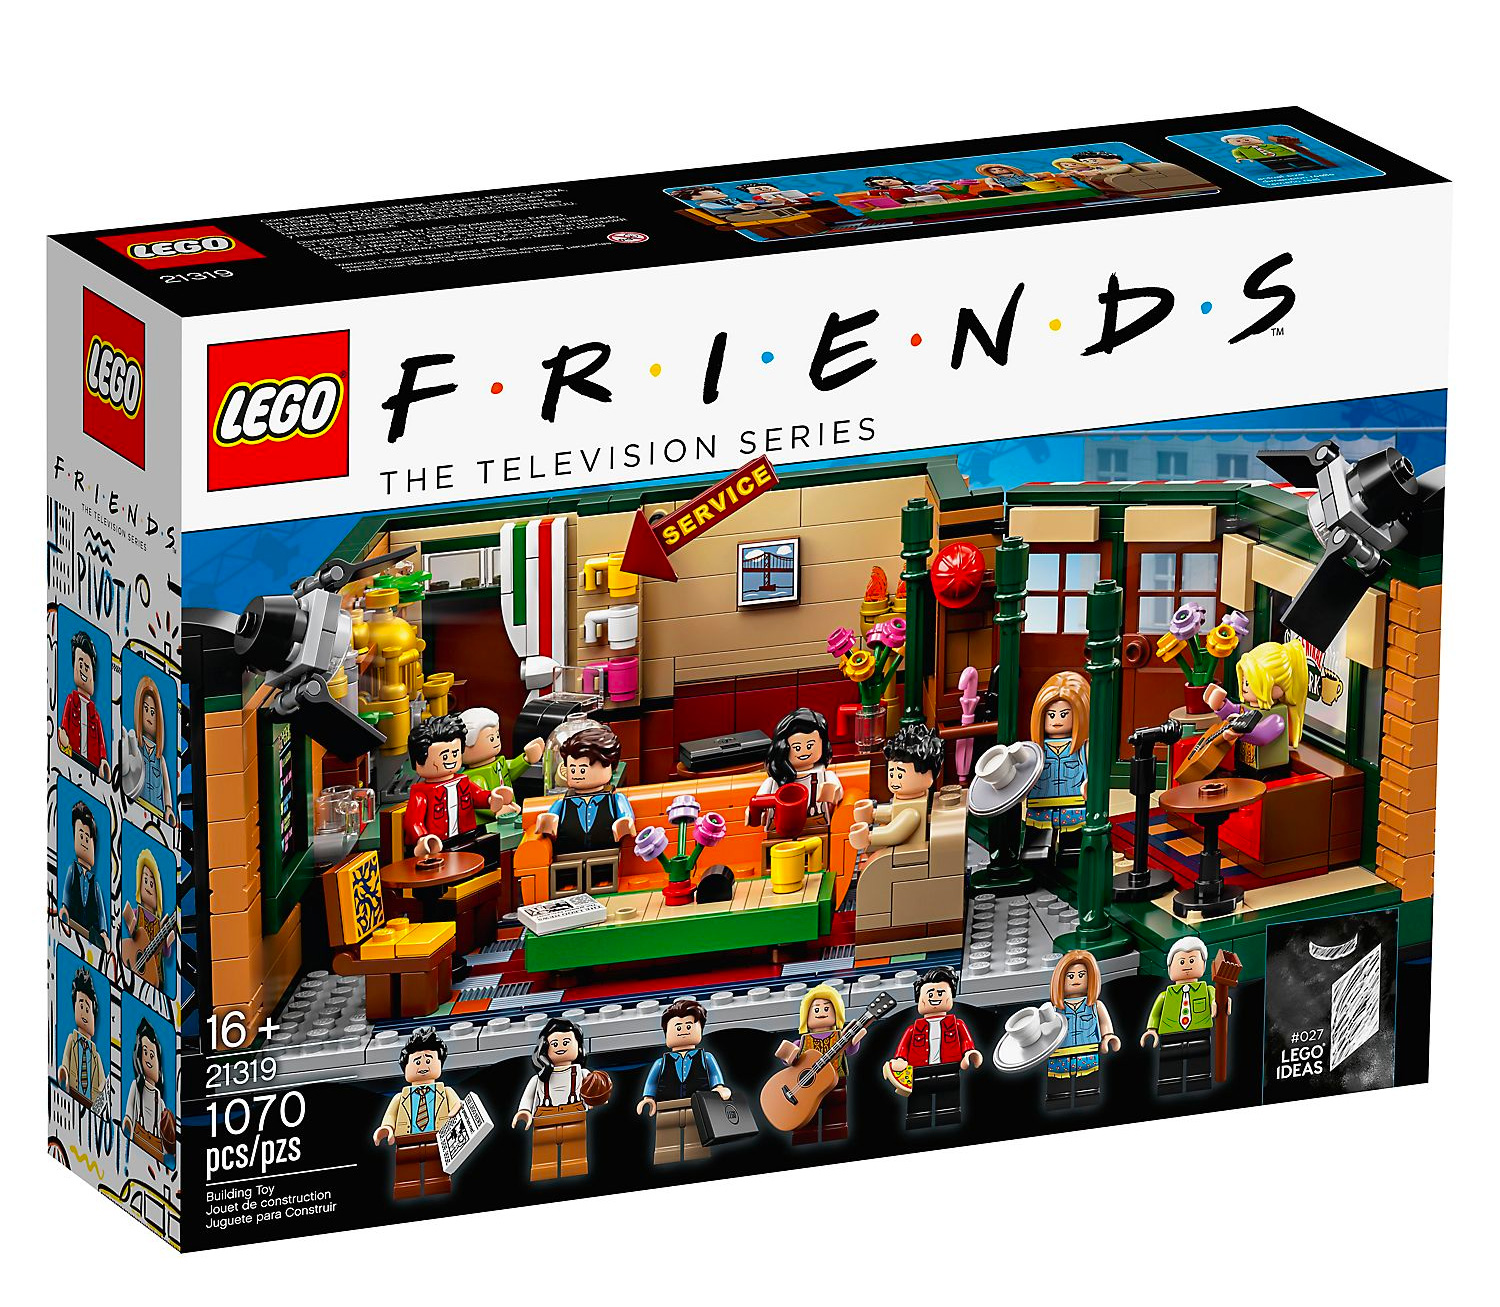 Lego Celebrates 25 Years of <i>Friends</i> with Limited Central Perk TV Set at werd.com